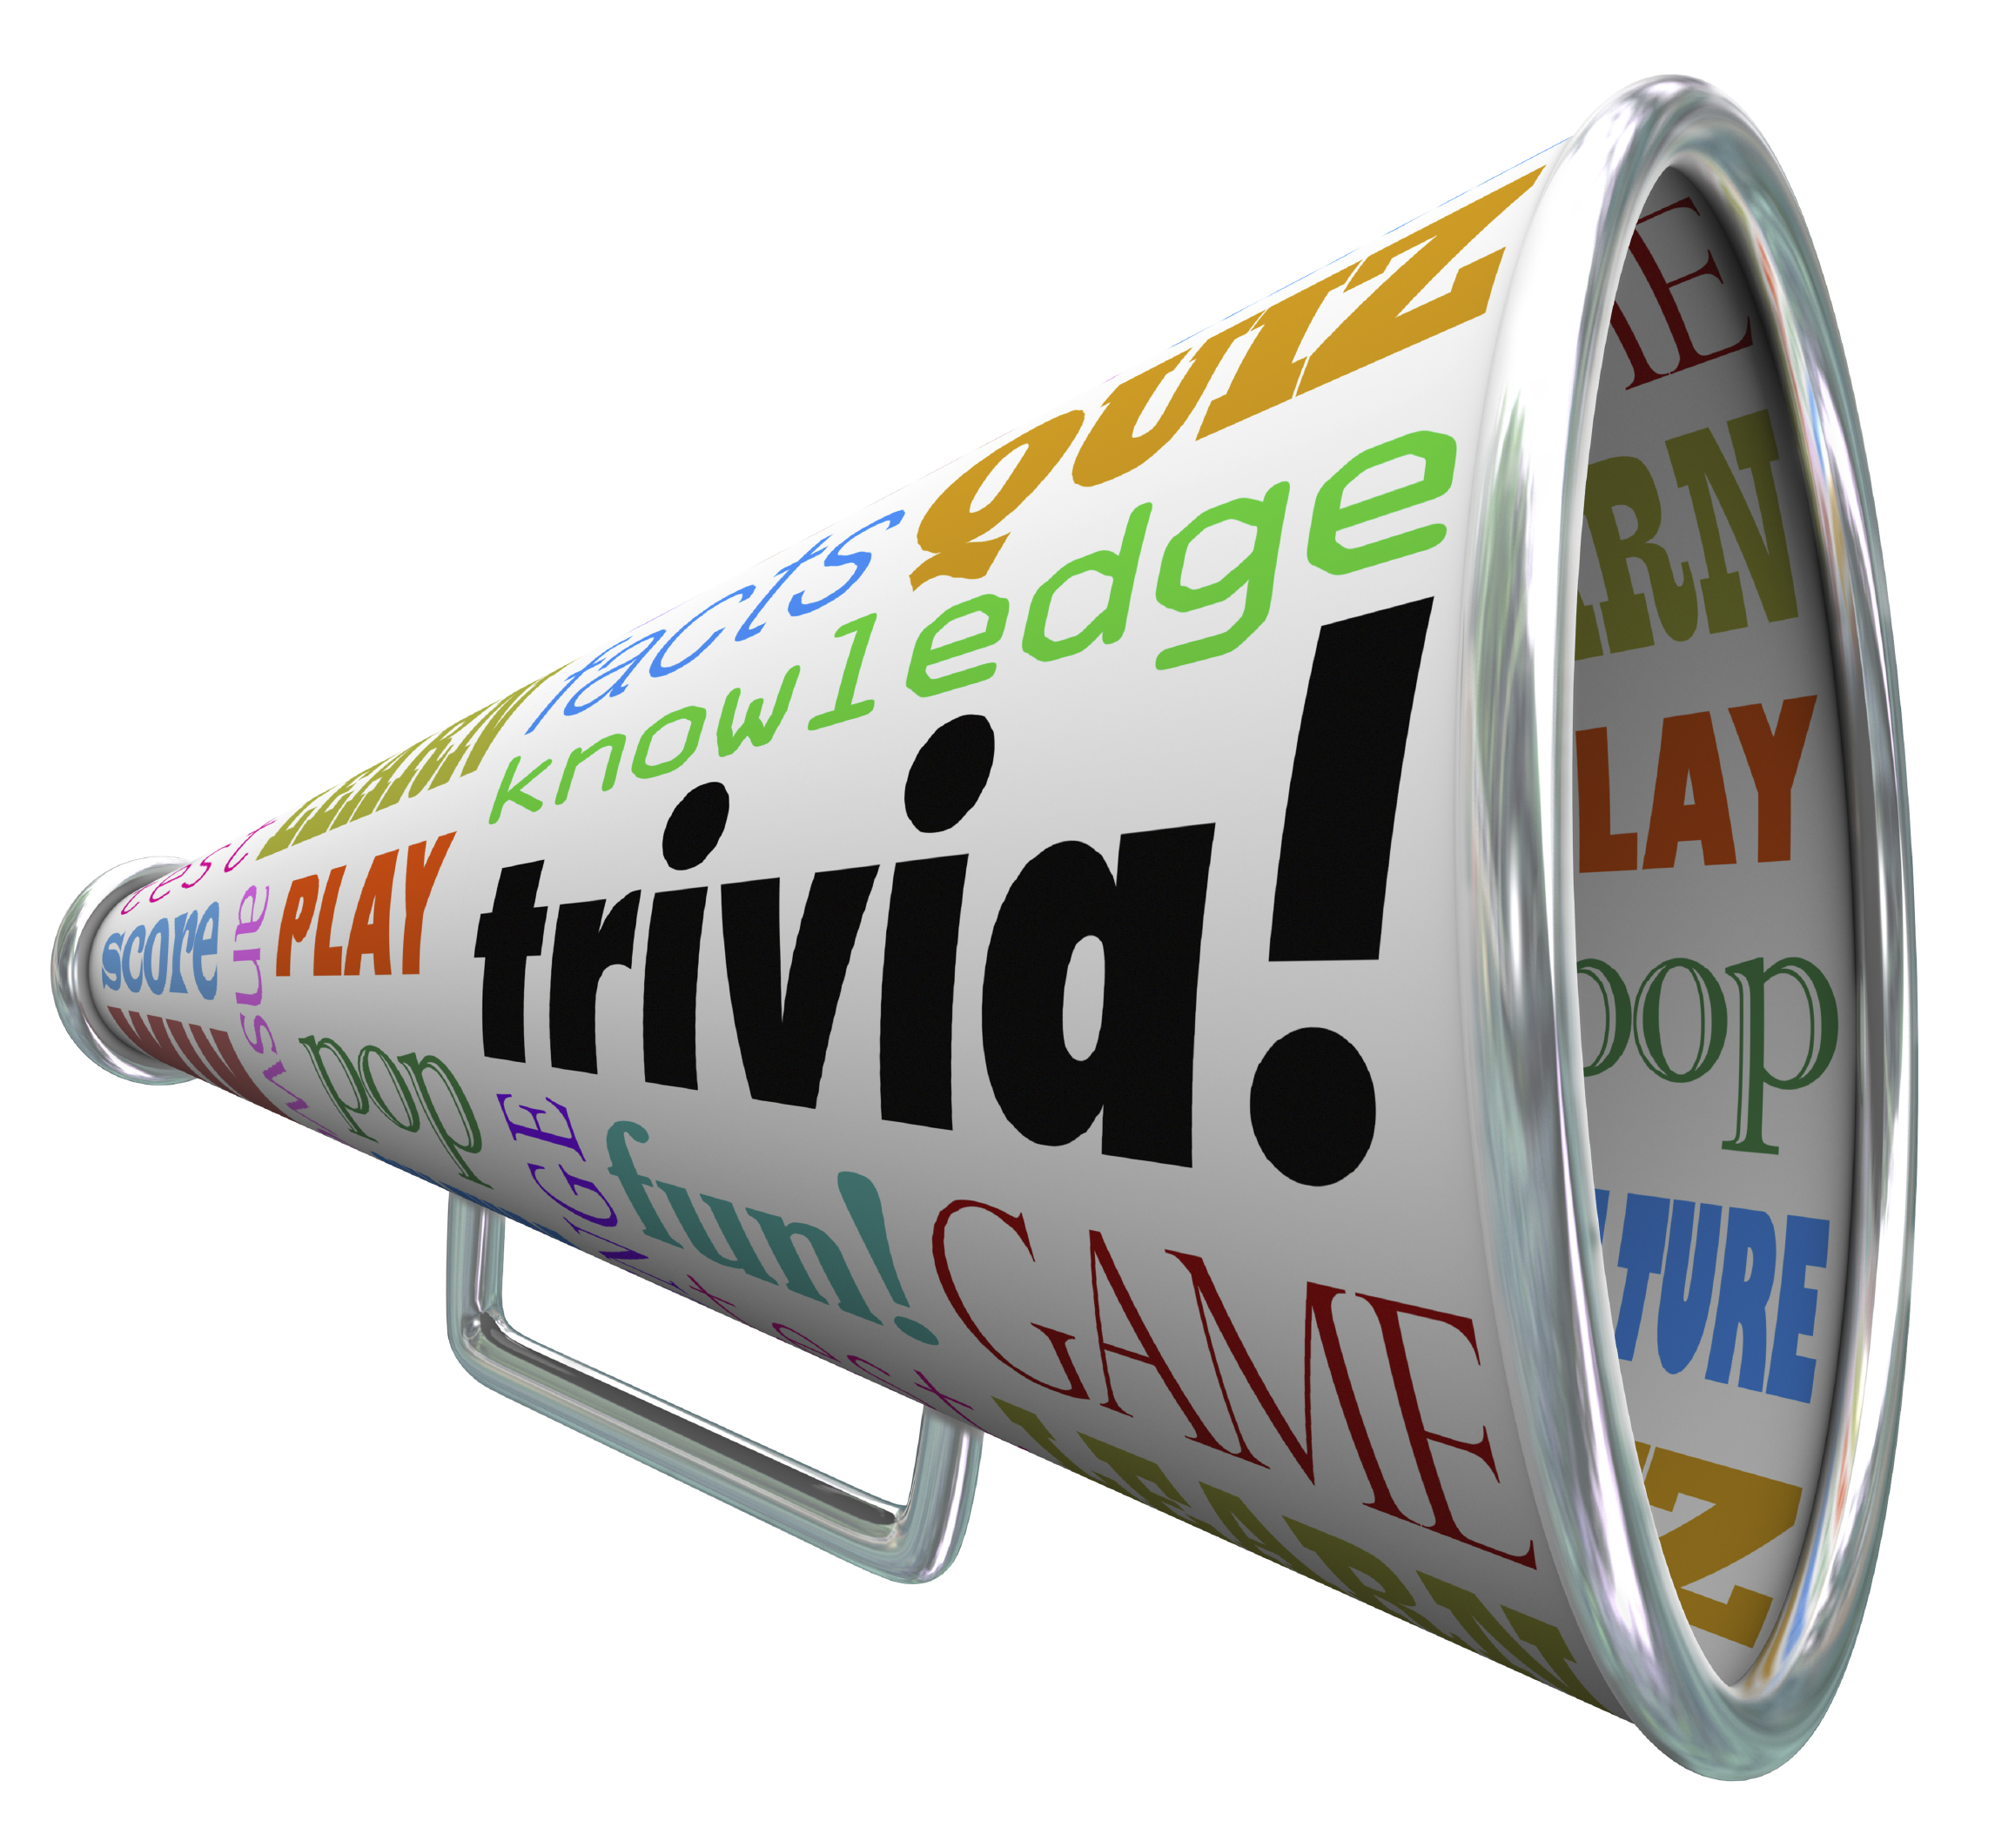 Trivia Knowledge Quiz Bullhorn Megaphone Test Pop Culture